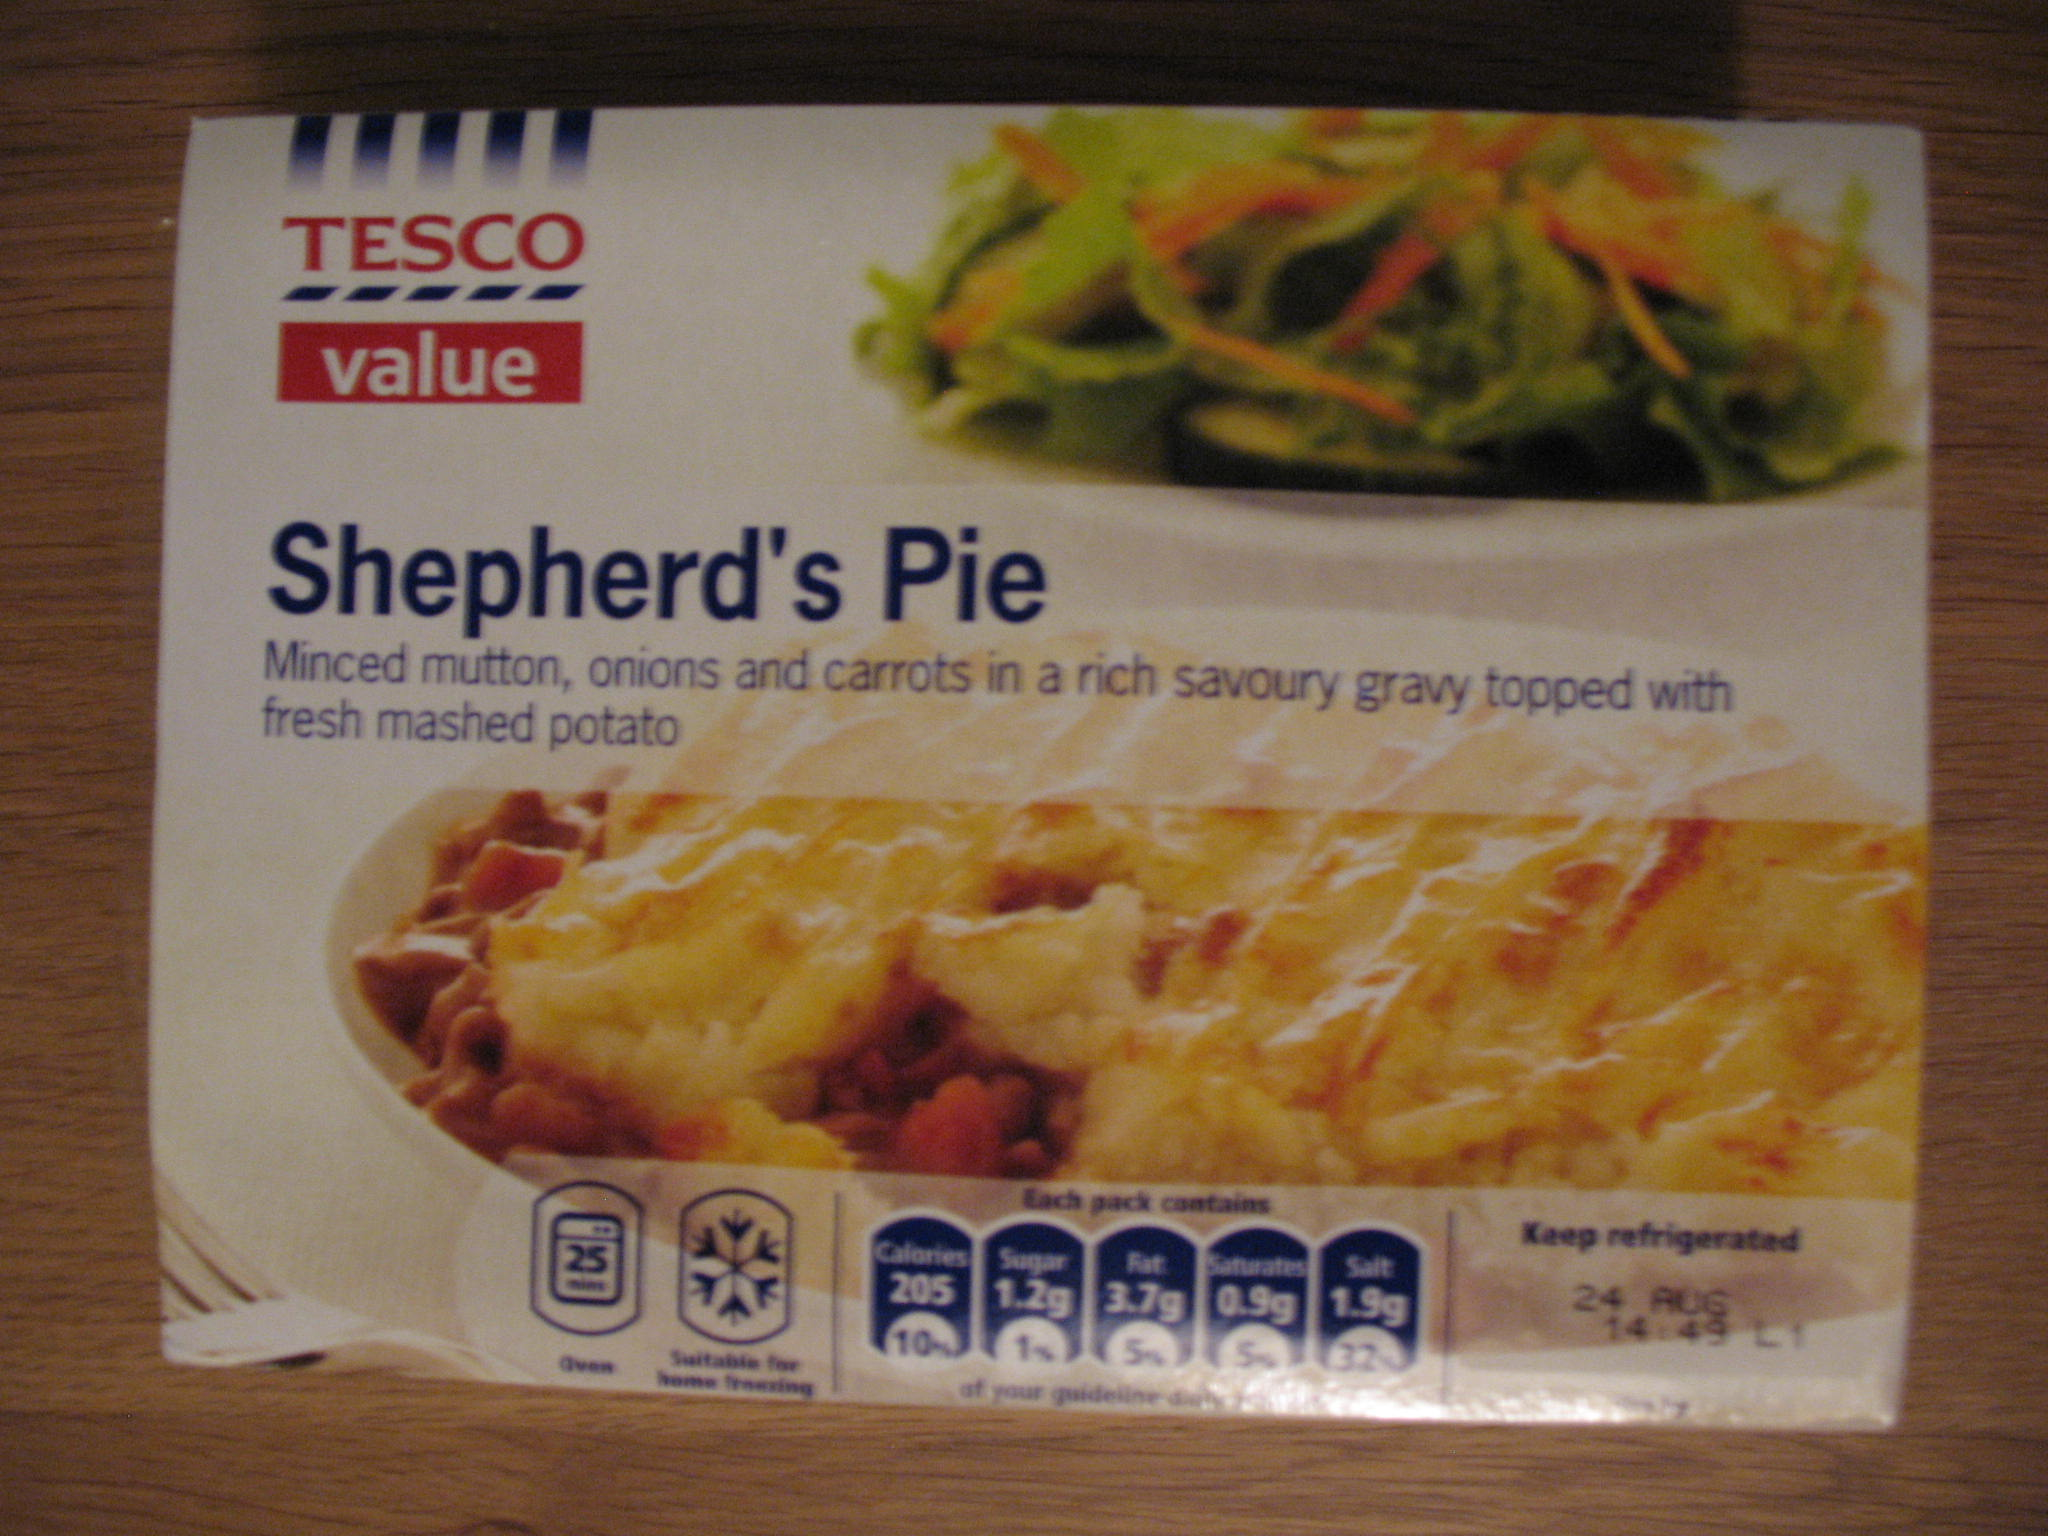 Head-to-head: Tesco Shepherd's Pies